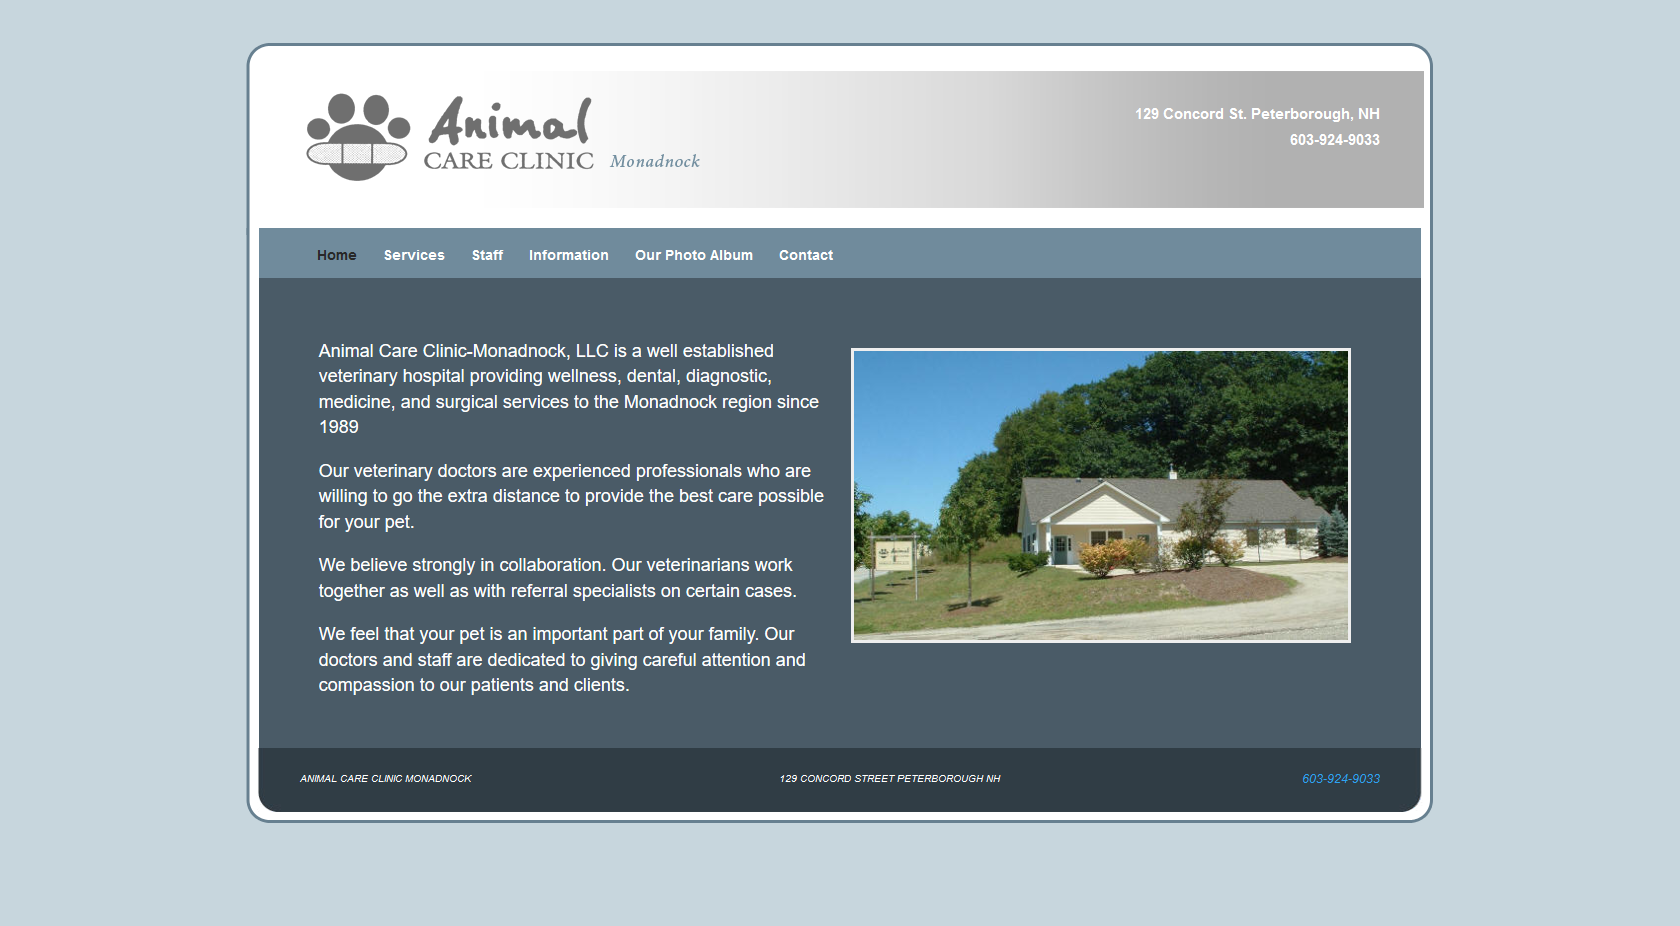 Animal Care Clinic - Monadnock screenshot